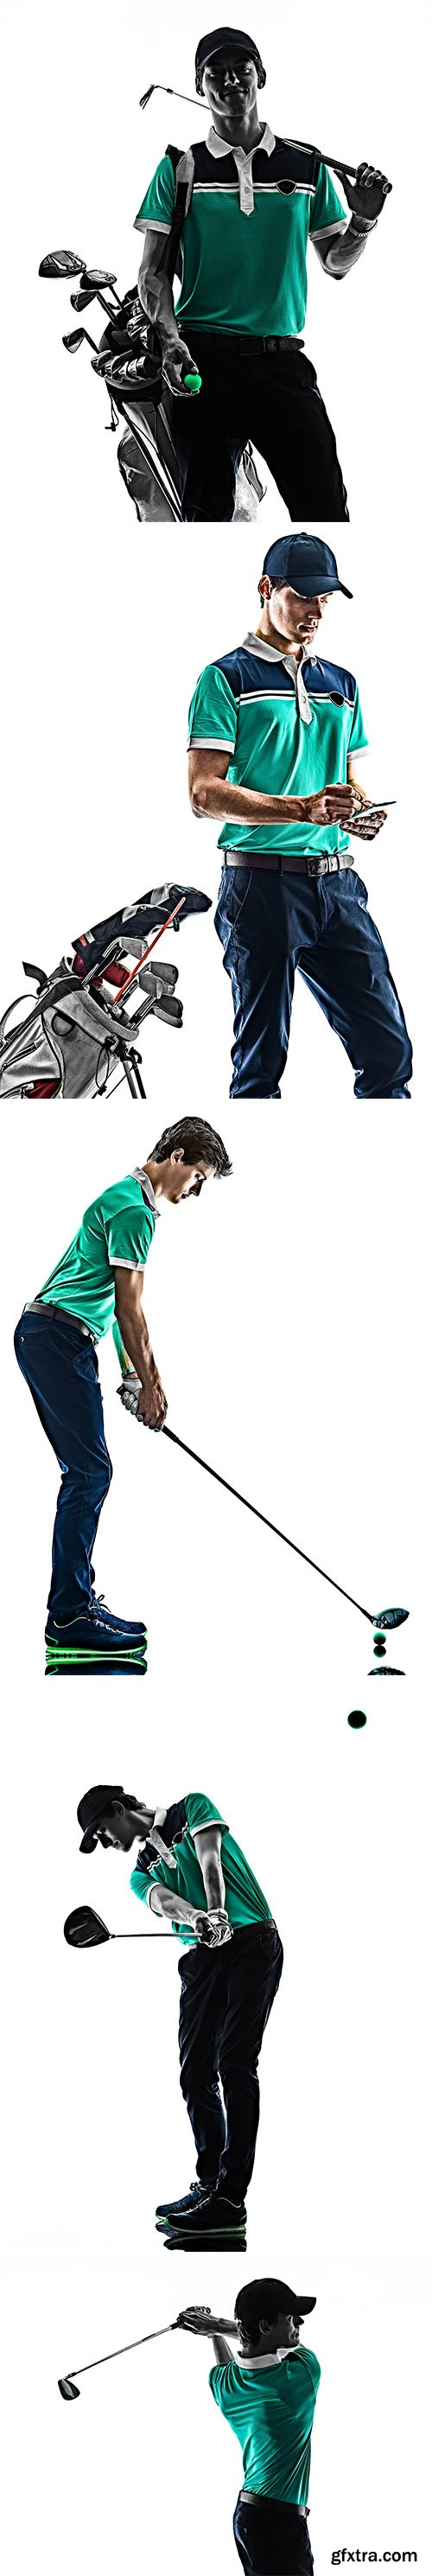 Golfer Isolated - 10xJPGs